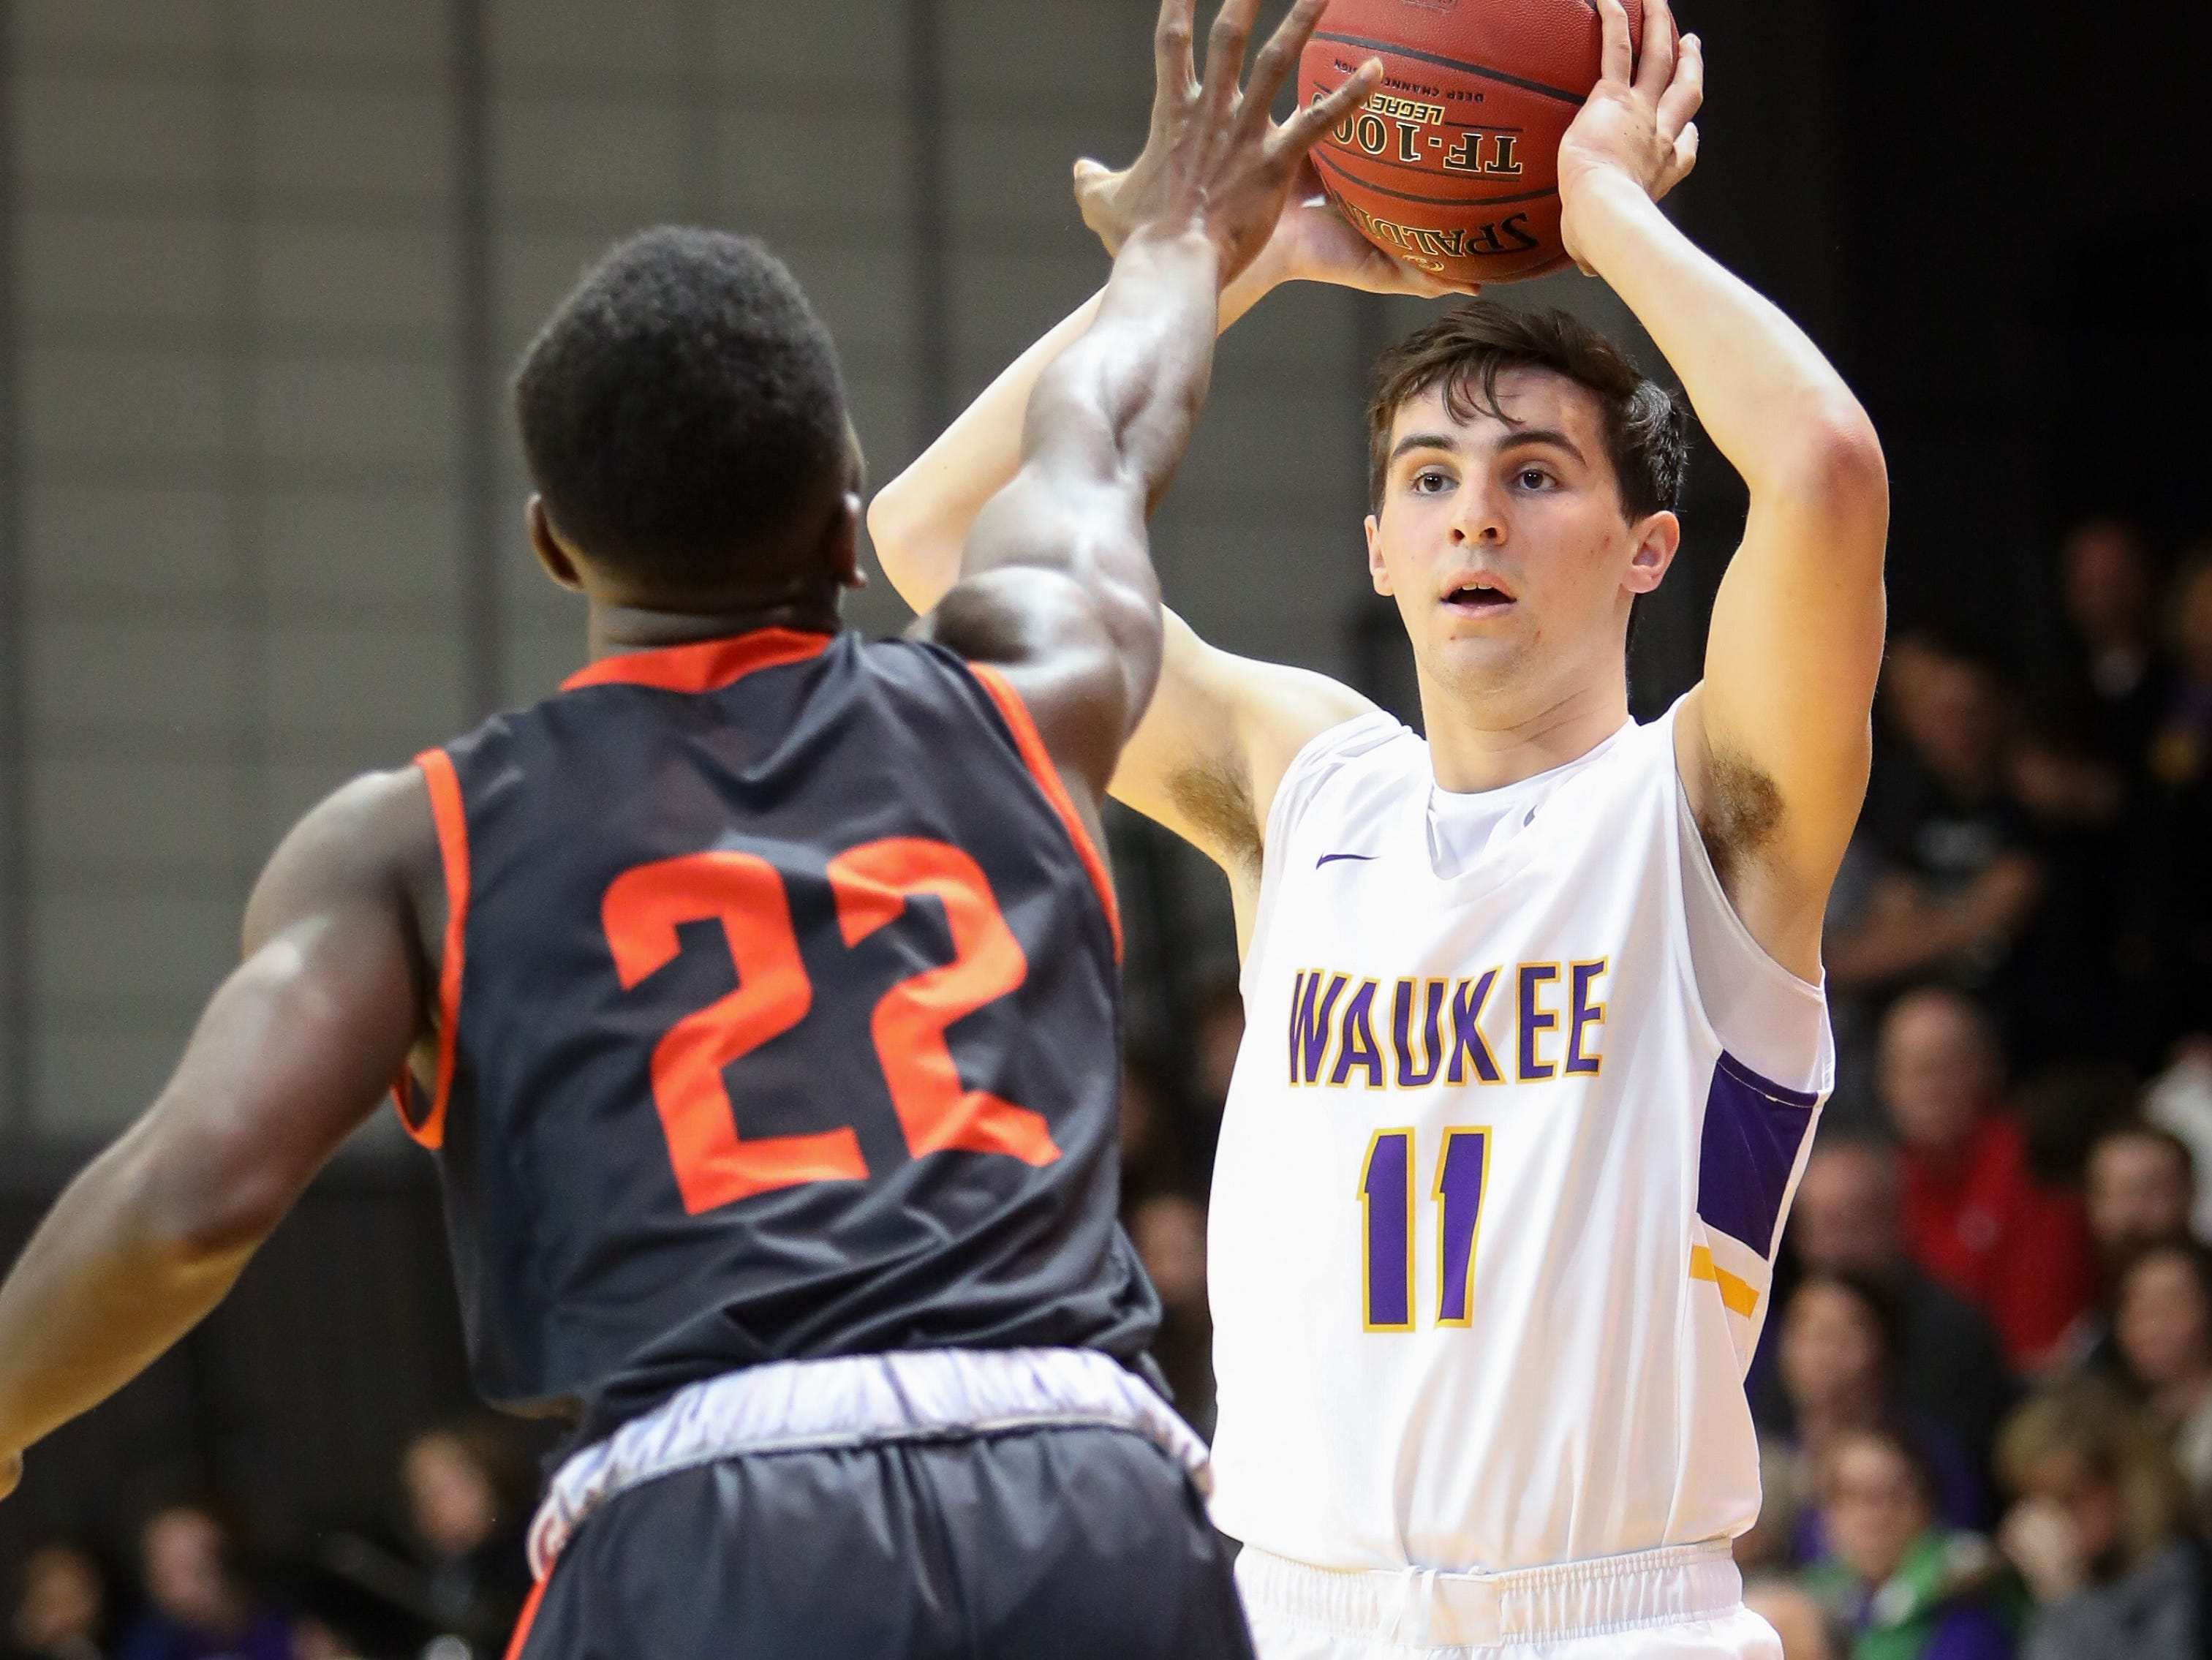 Waukee senior Noah Hart looks for an open teammate during a boys high school basketball game between the Valley Tigers and the Waukee Warriors at Waukee High School on Dec. 14, 2018 in Waukee, Iowa.